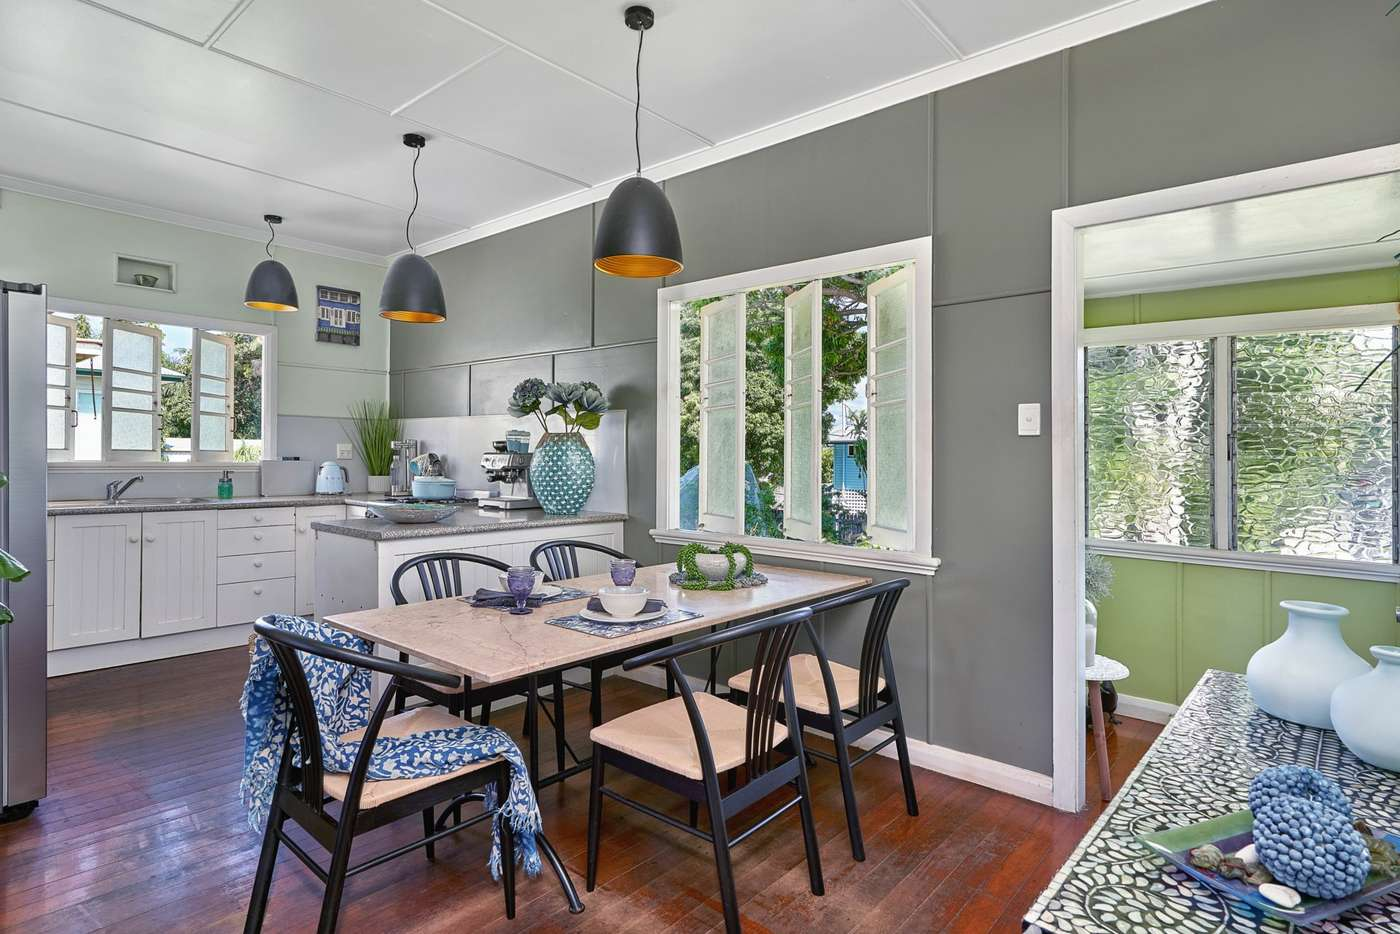 Main view of Homely house listing, 23 Jones Street, Westcourt QLD 4870